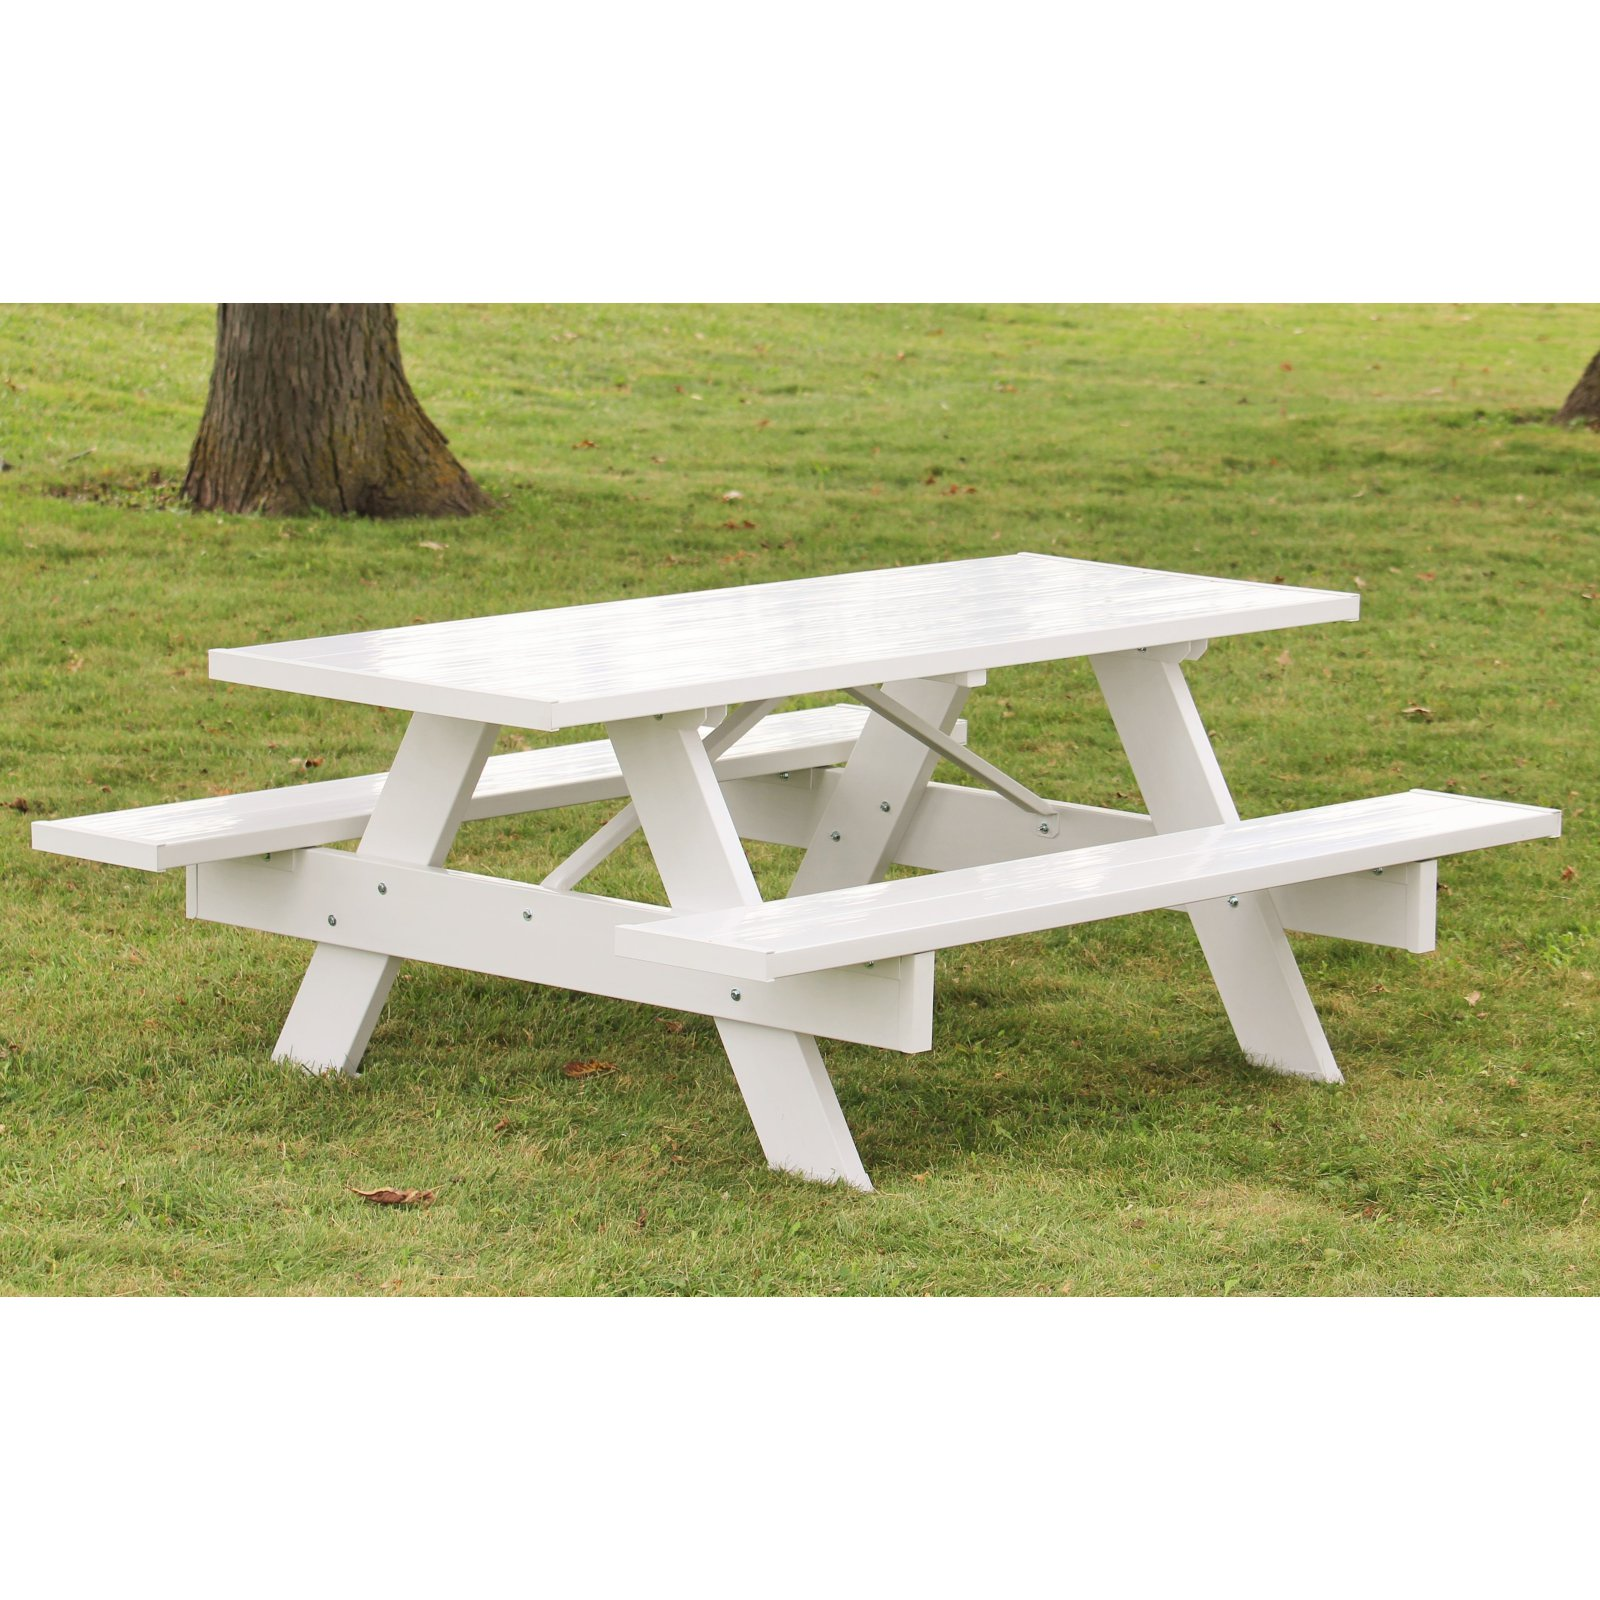 Dura-Trel Traditional White Picnic Table by Dura-Trel